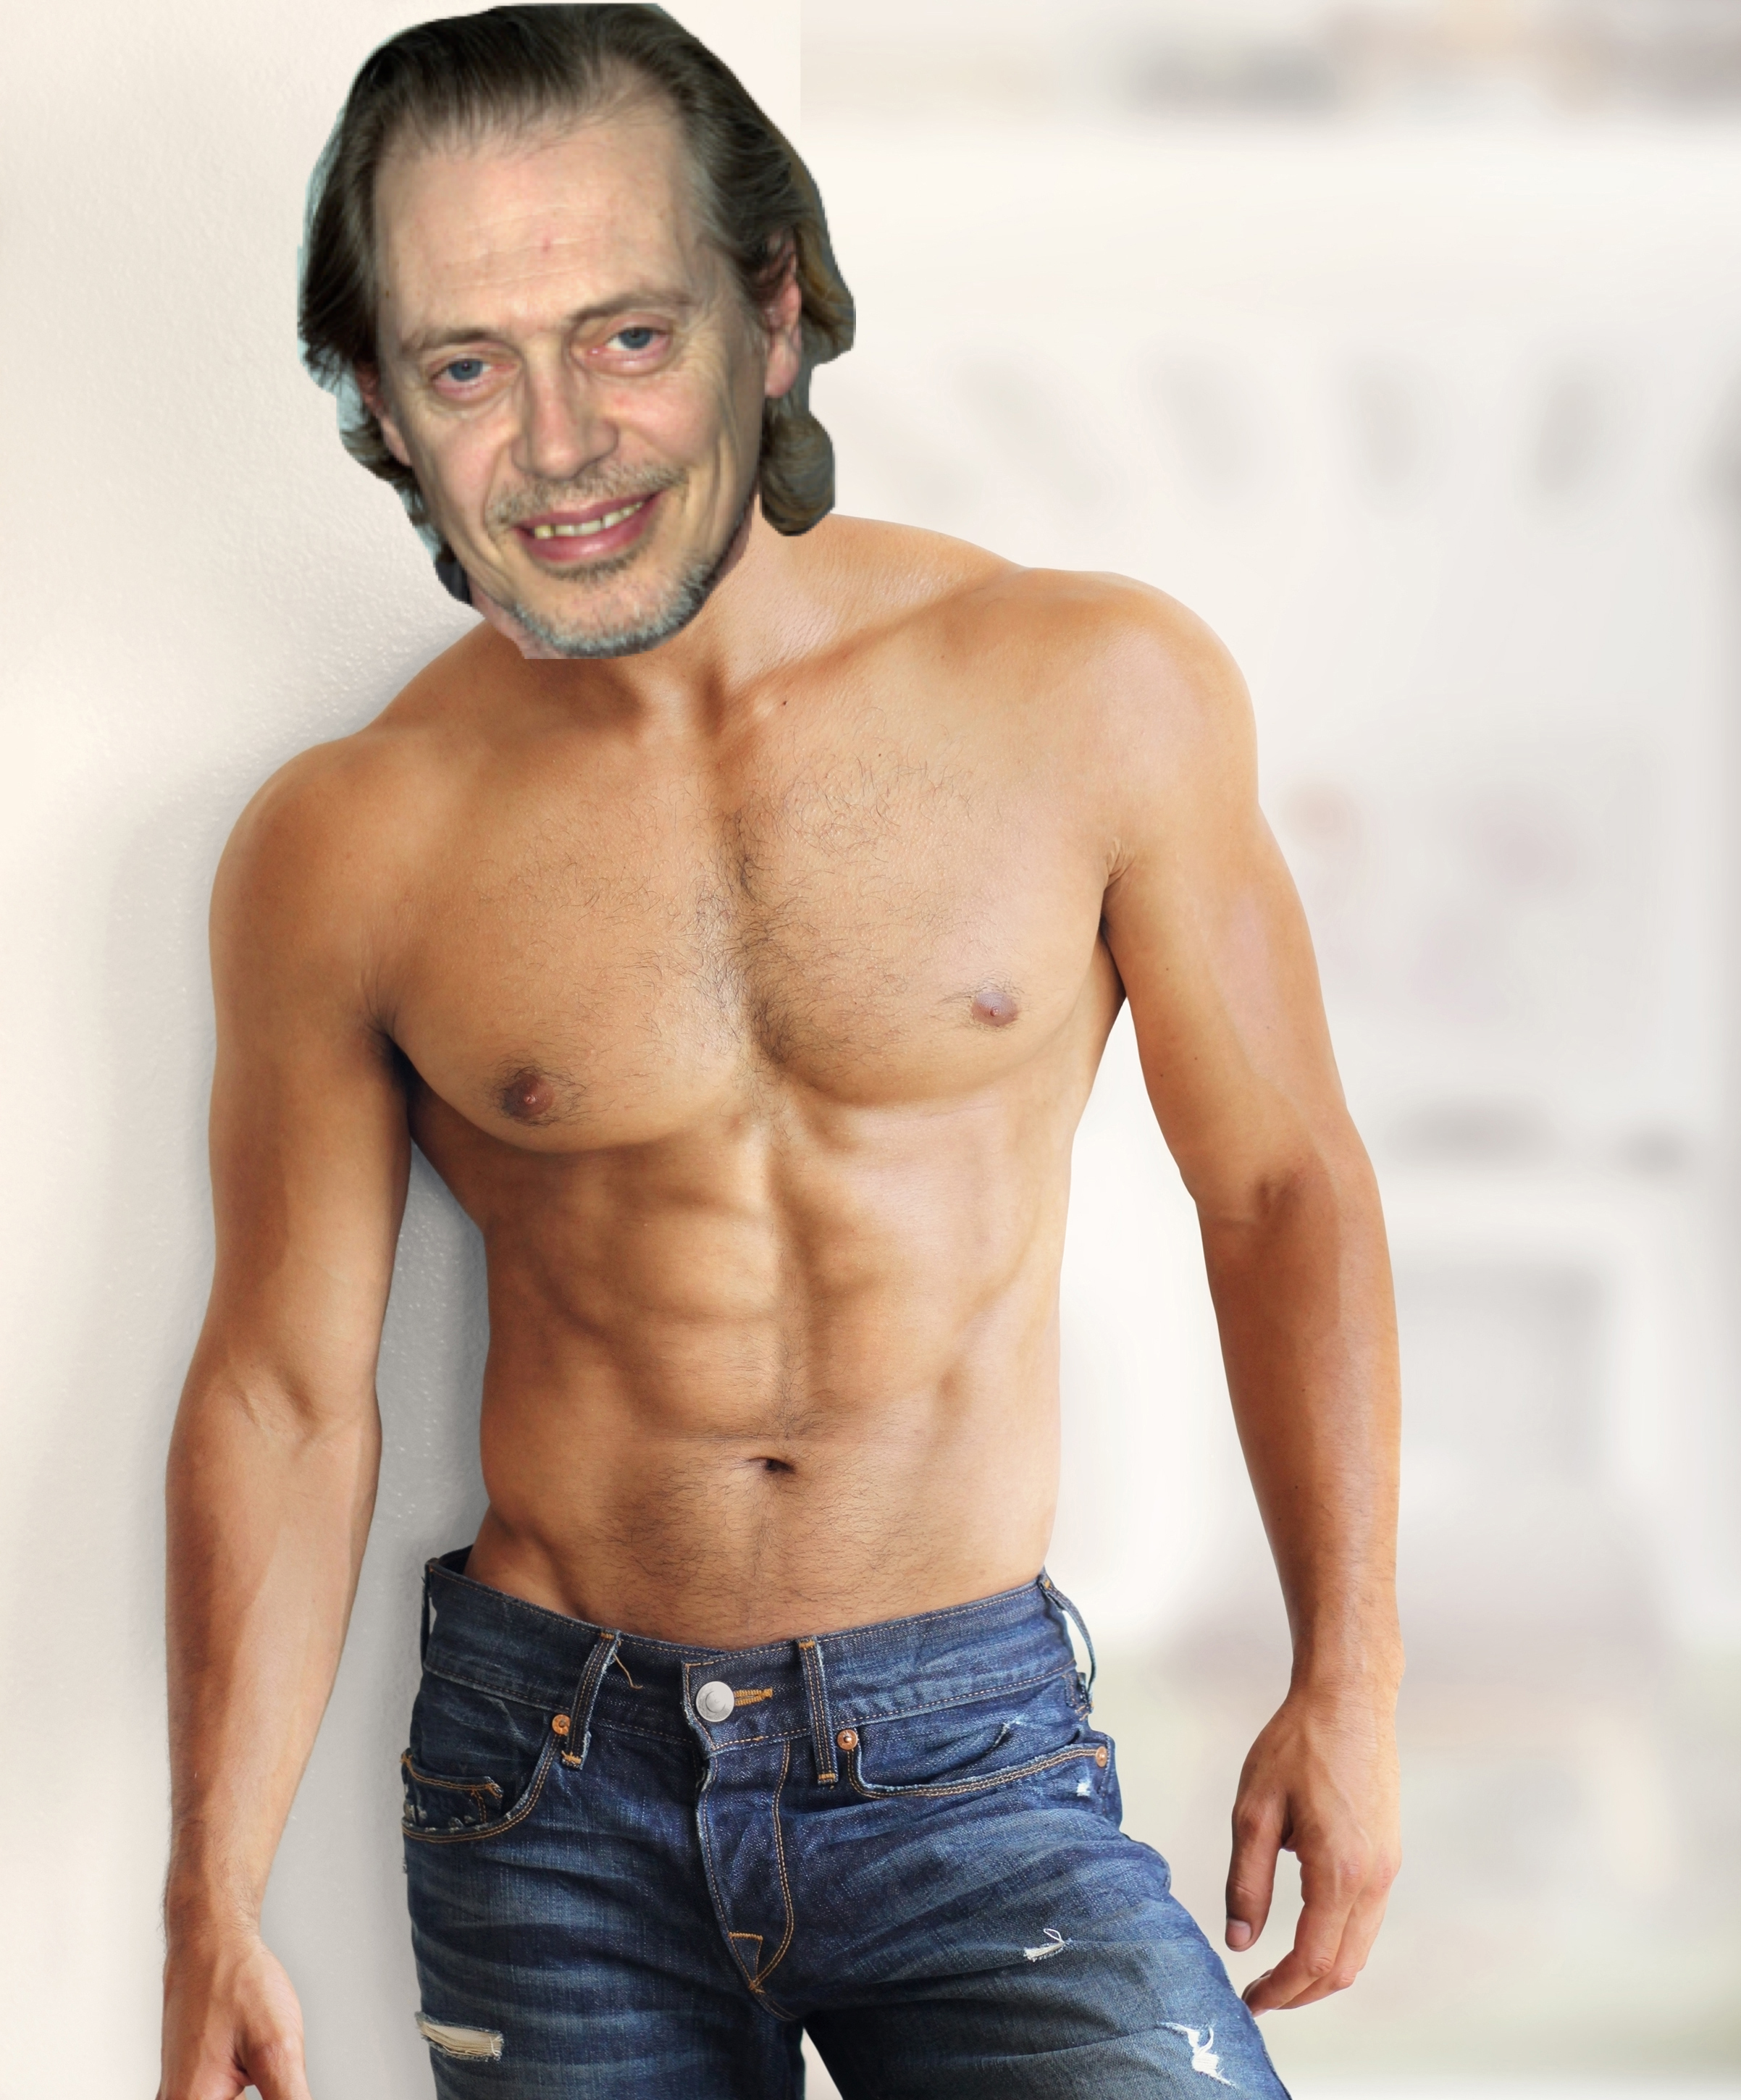 Steve Buscemi Background Wallpapers 82 images in Collection Page 2 2404x2900